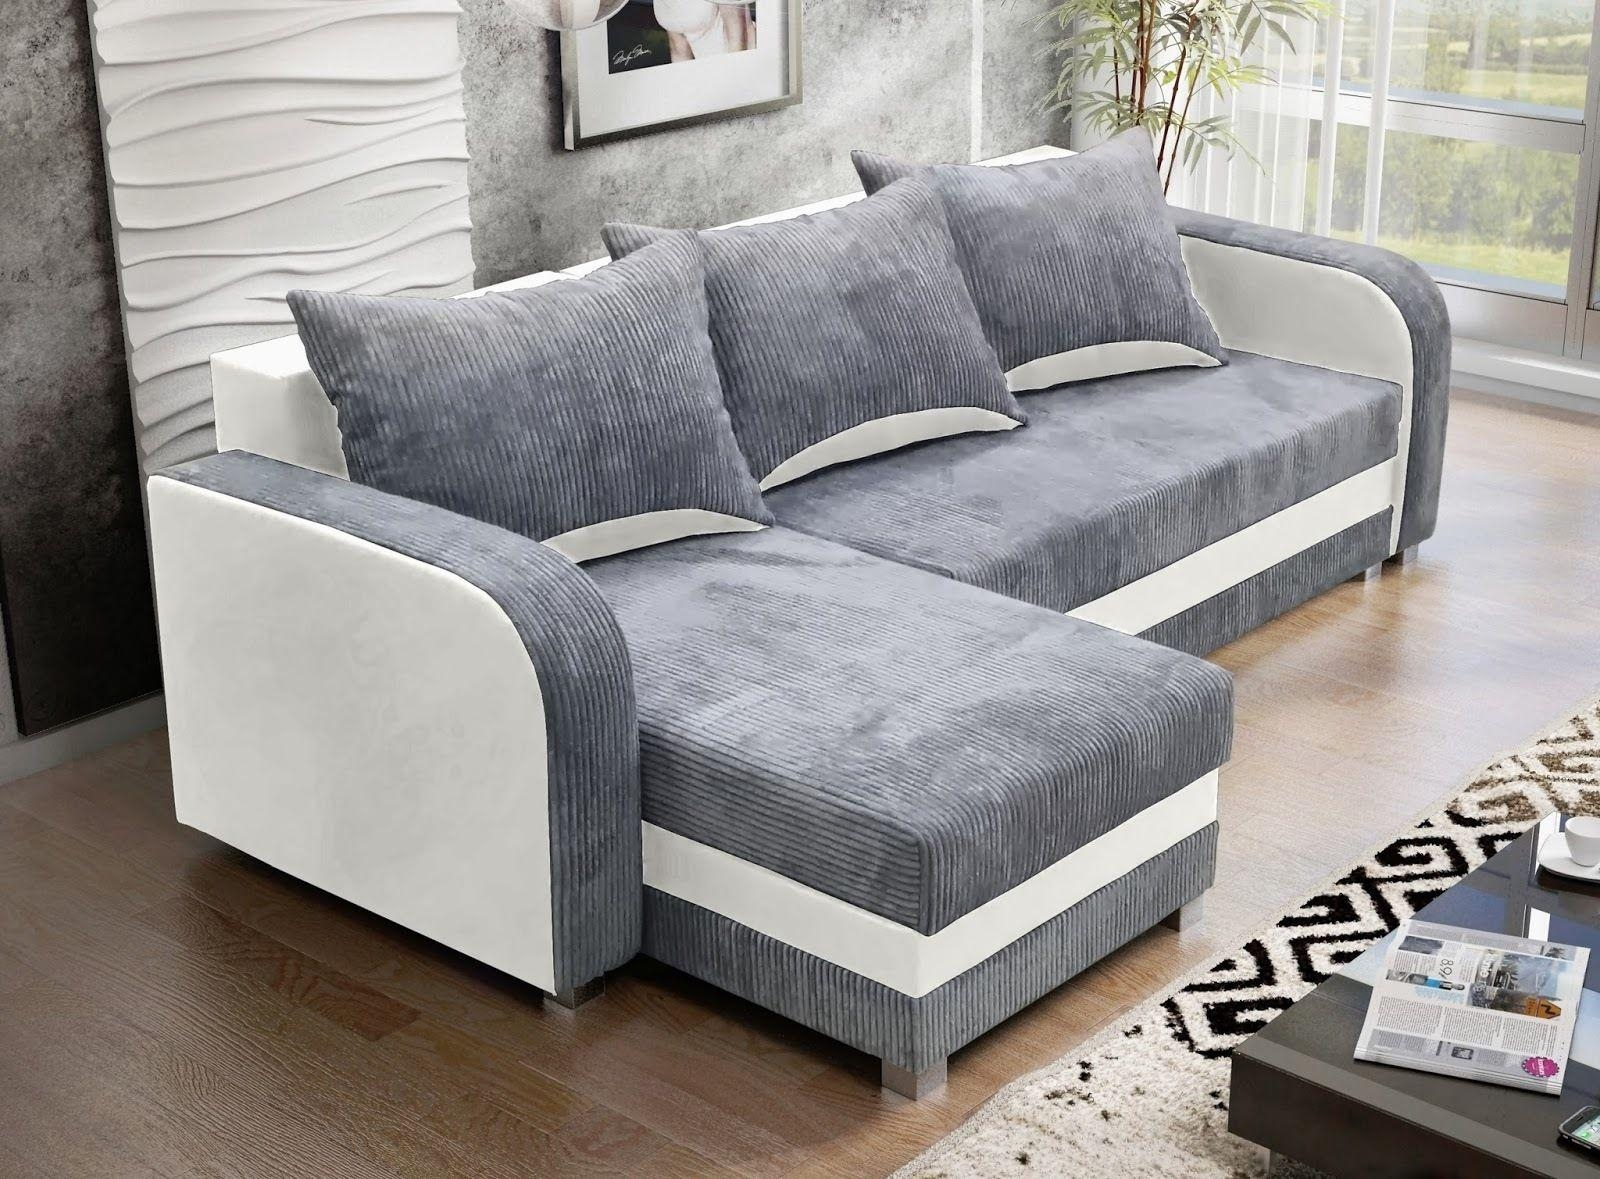 Sofa Bed Sale Pertaining To Corner Sofa Bed Sale (Image 17 of 20)